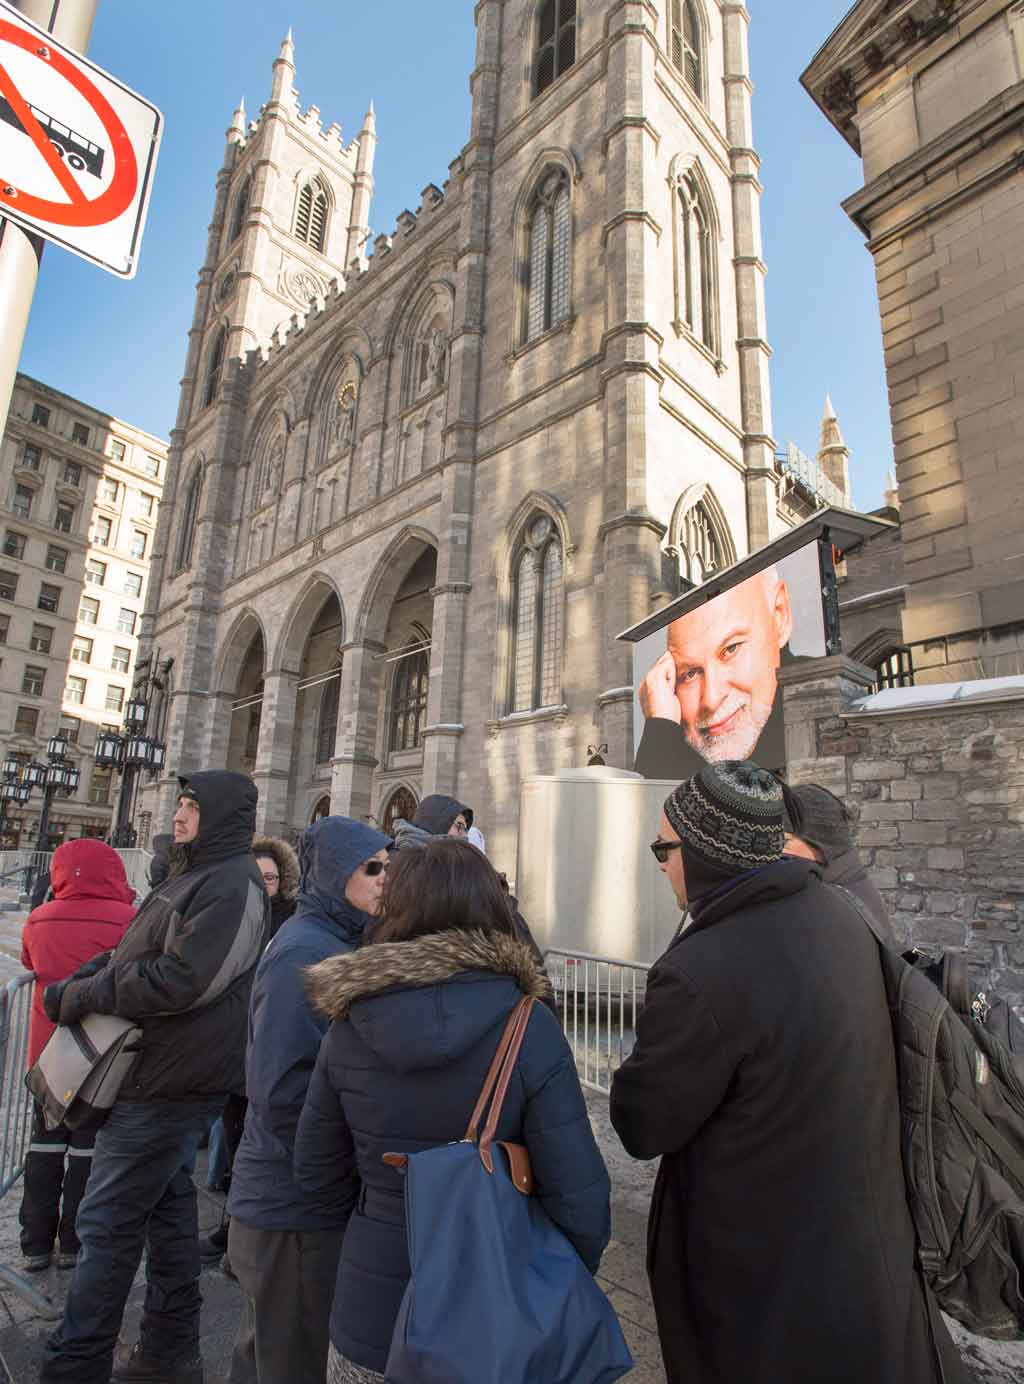 The funeral will be held at the Notre-Dame Basilica. (AAP)